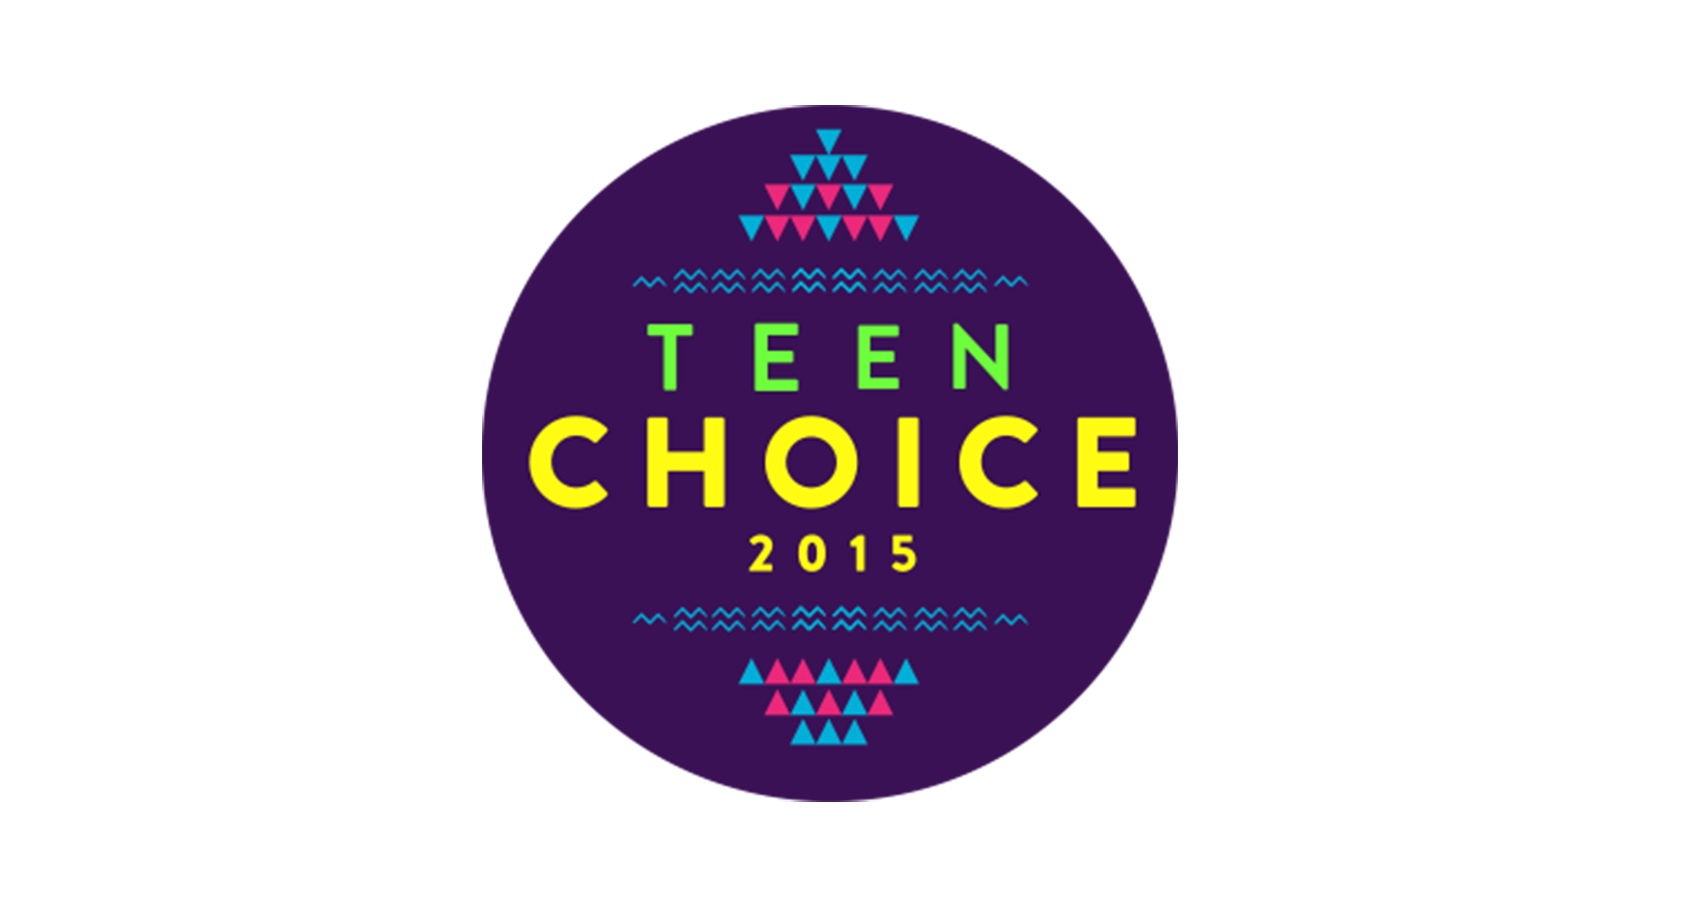 Teen Choice Awards Reveal More Nominations - PPcorn